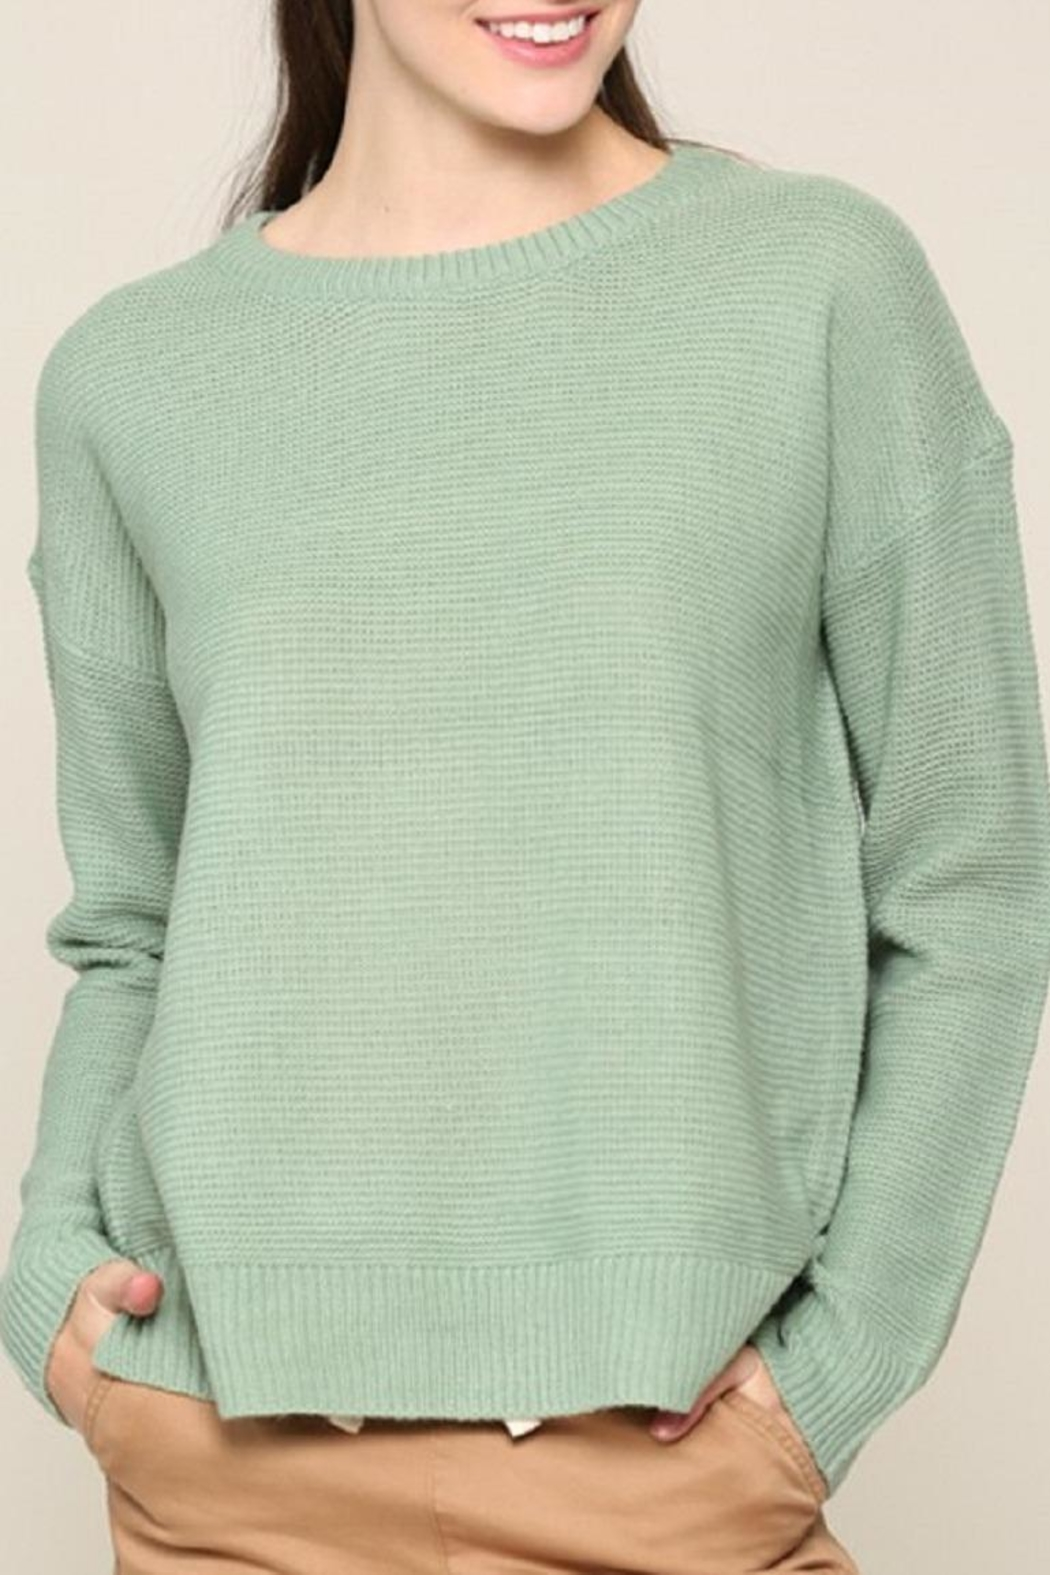 Be Cool Mint Boyfriend-Fit Sweater - Main Image